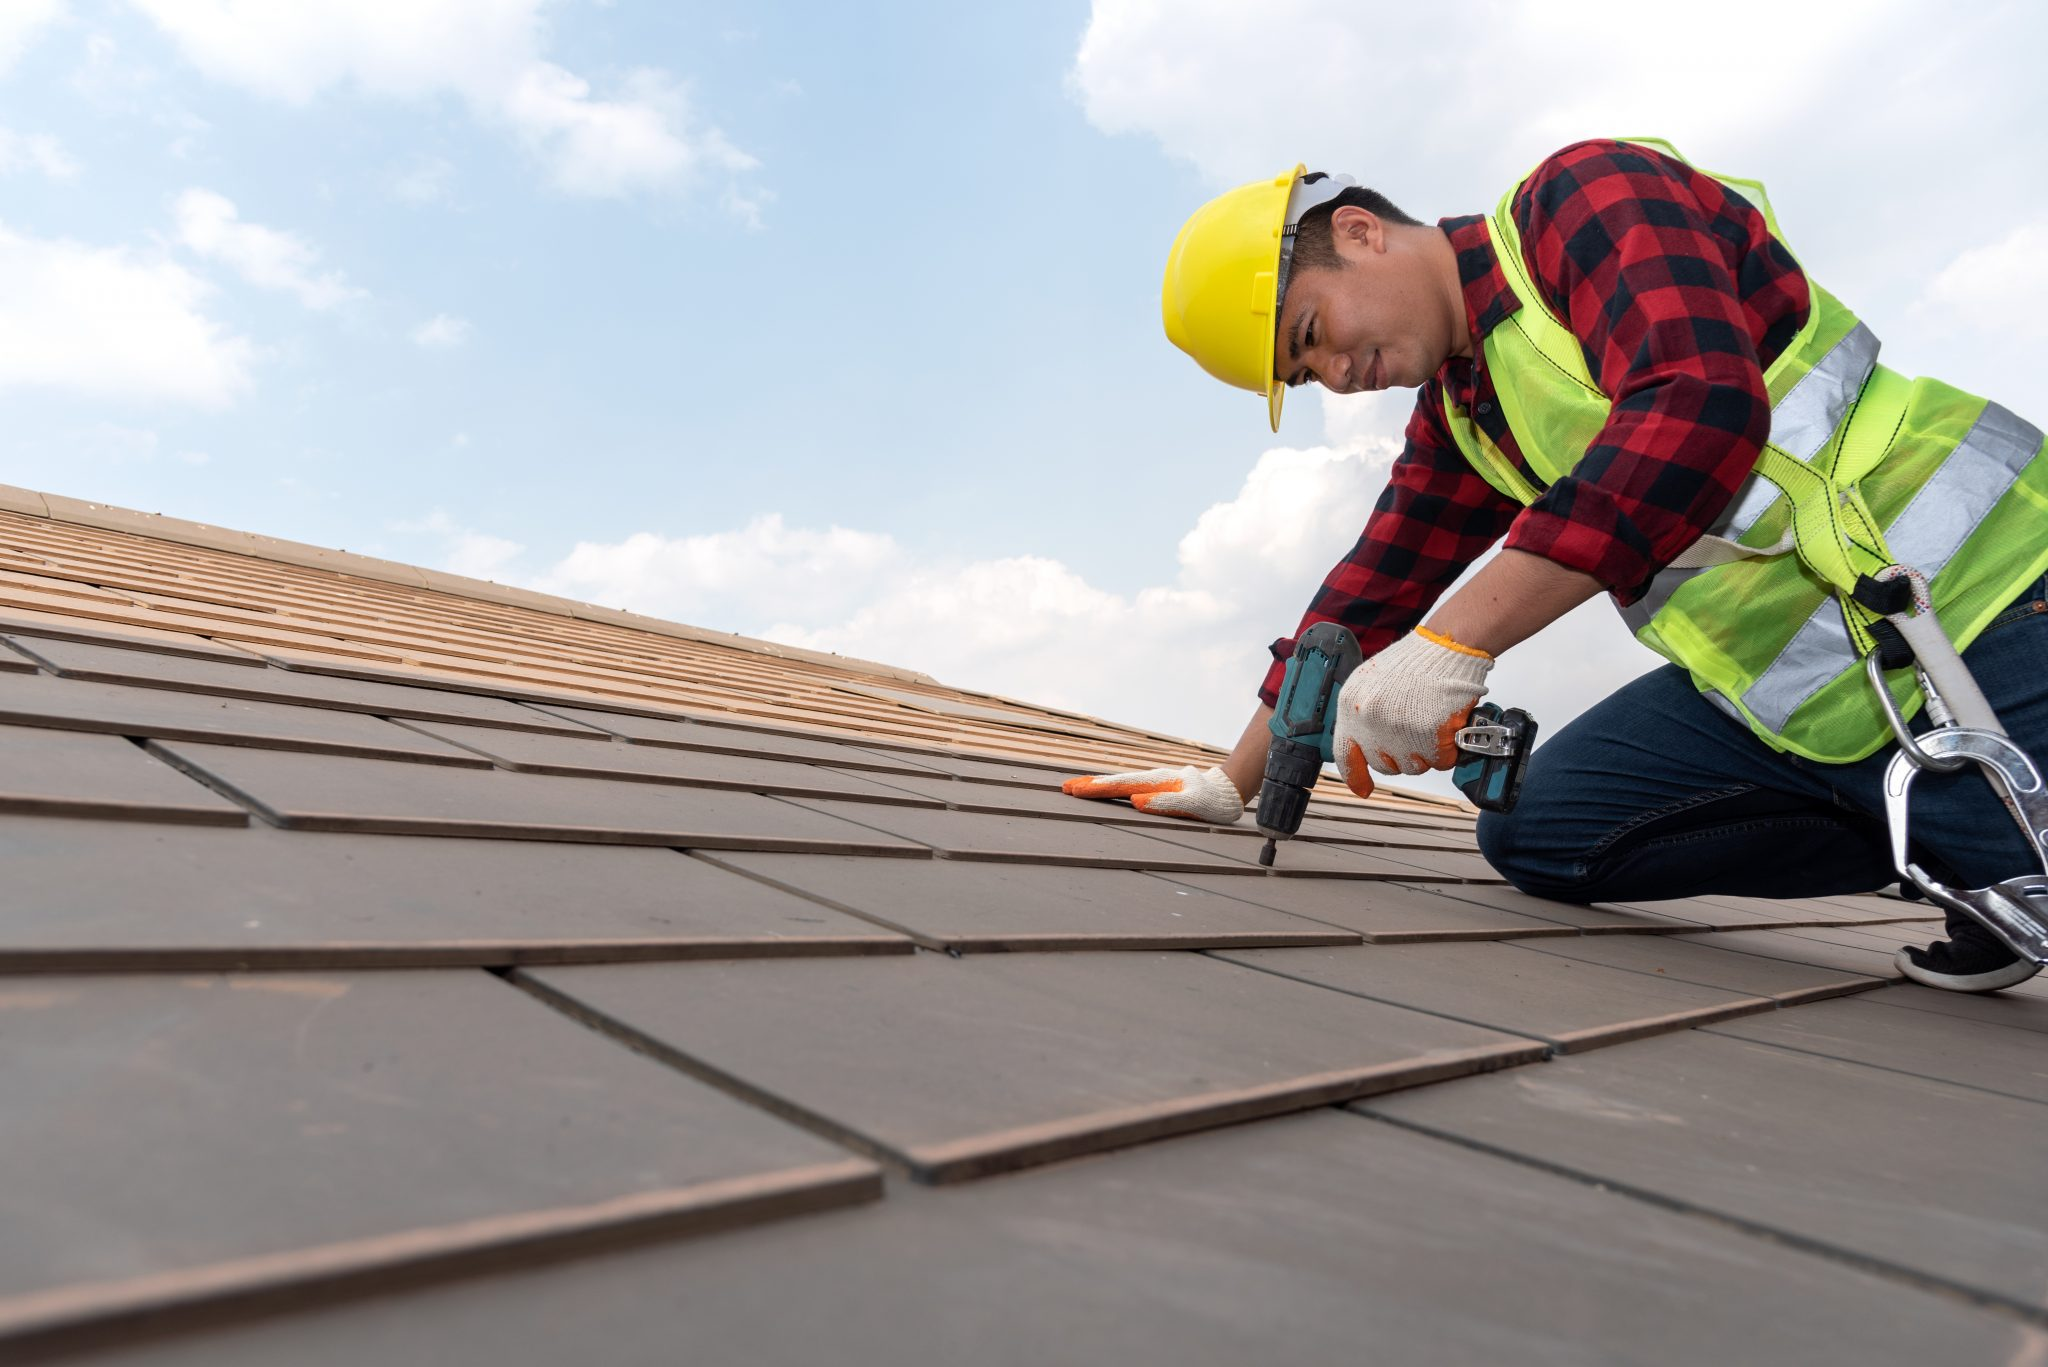 Who Is Liable for Contractor Injuries – the Property Owner or the Employer?